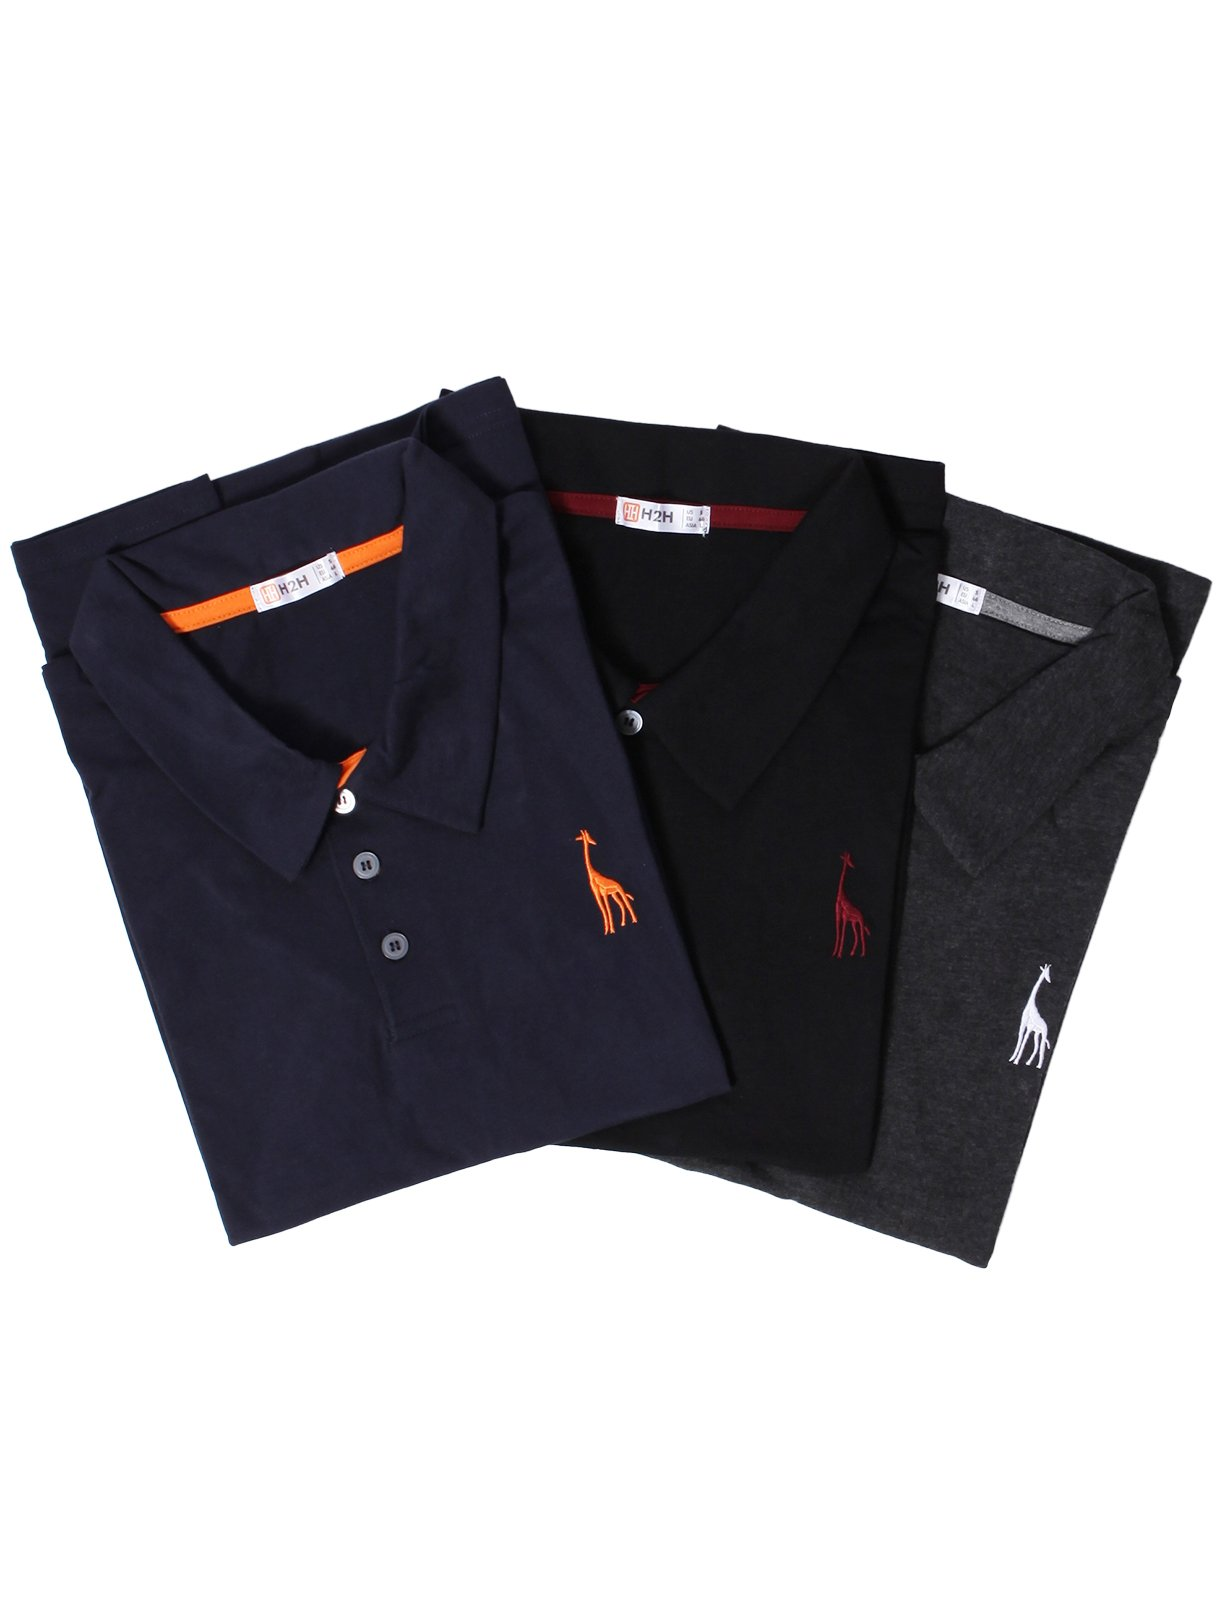 6f7f16a25 Galleon - H2H Mens Classic Solid Giraffe Polo Shirts With Giraffe Embroidery  Set MULTI1 US S/Asia L (SET3JDSK36)